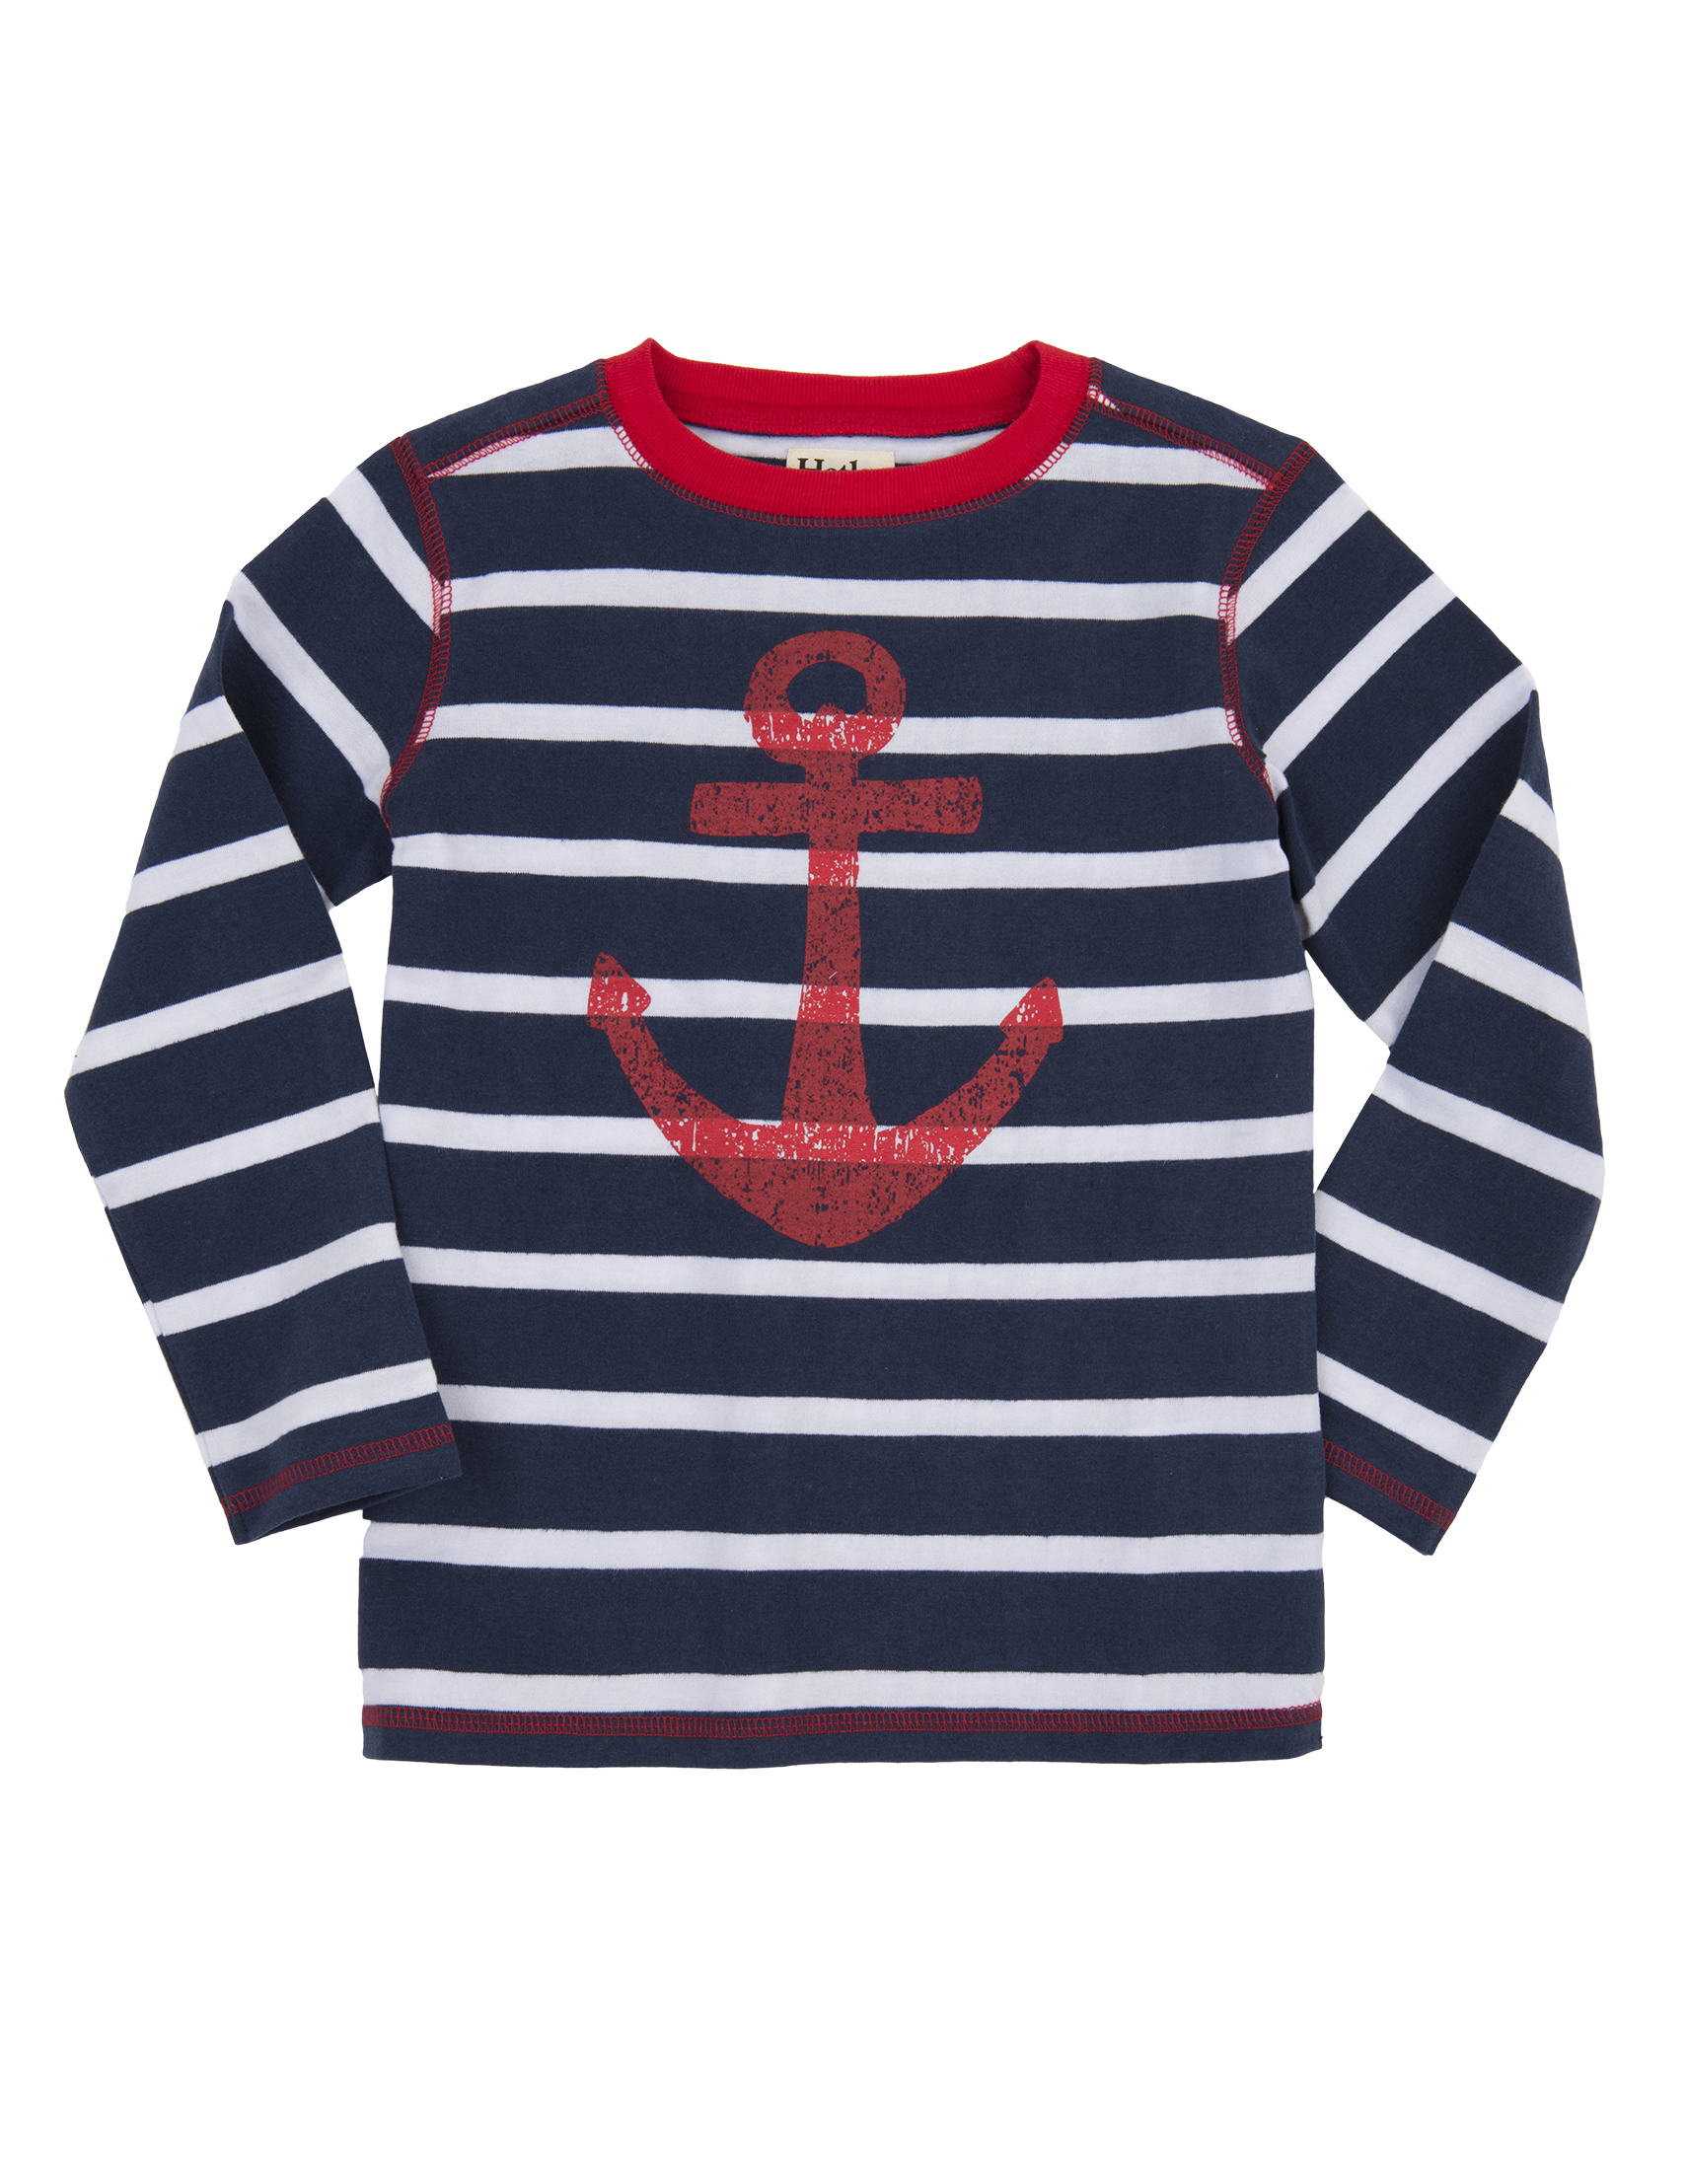 Hatley Navy & White Striped Tee with Large Red Anchor ...